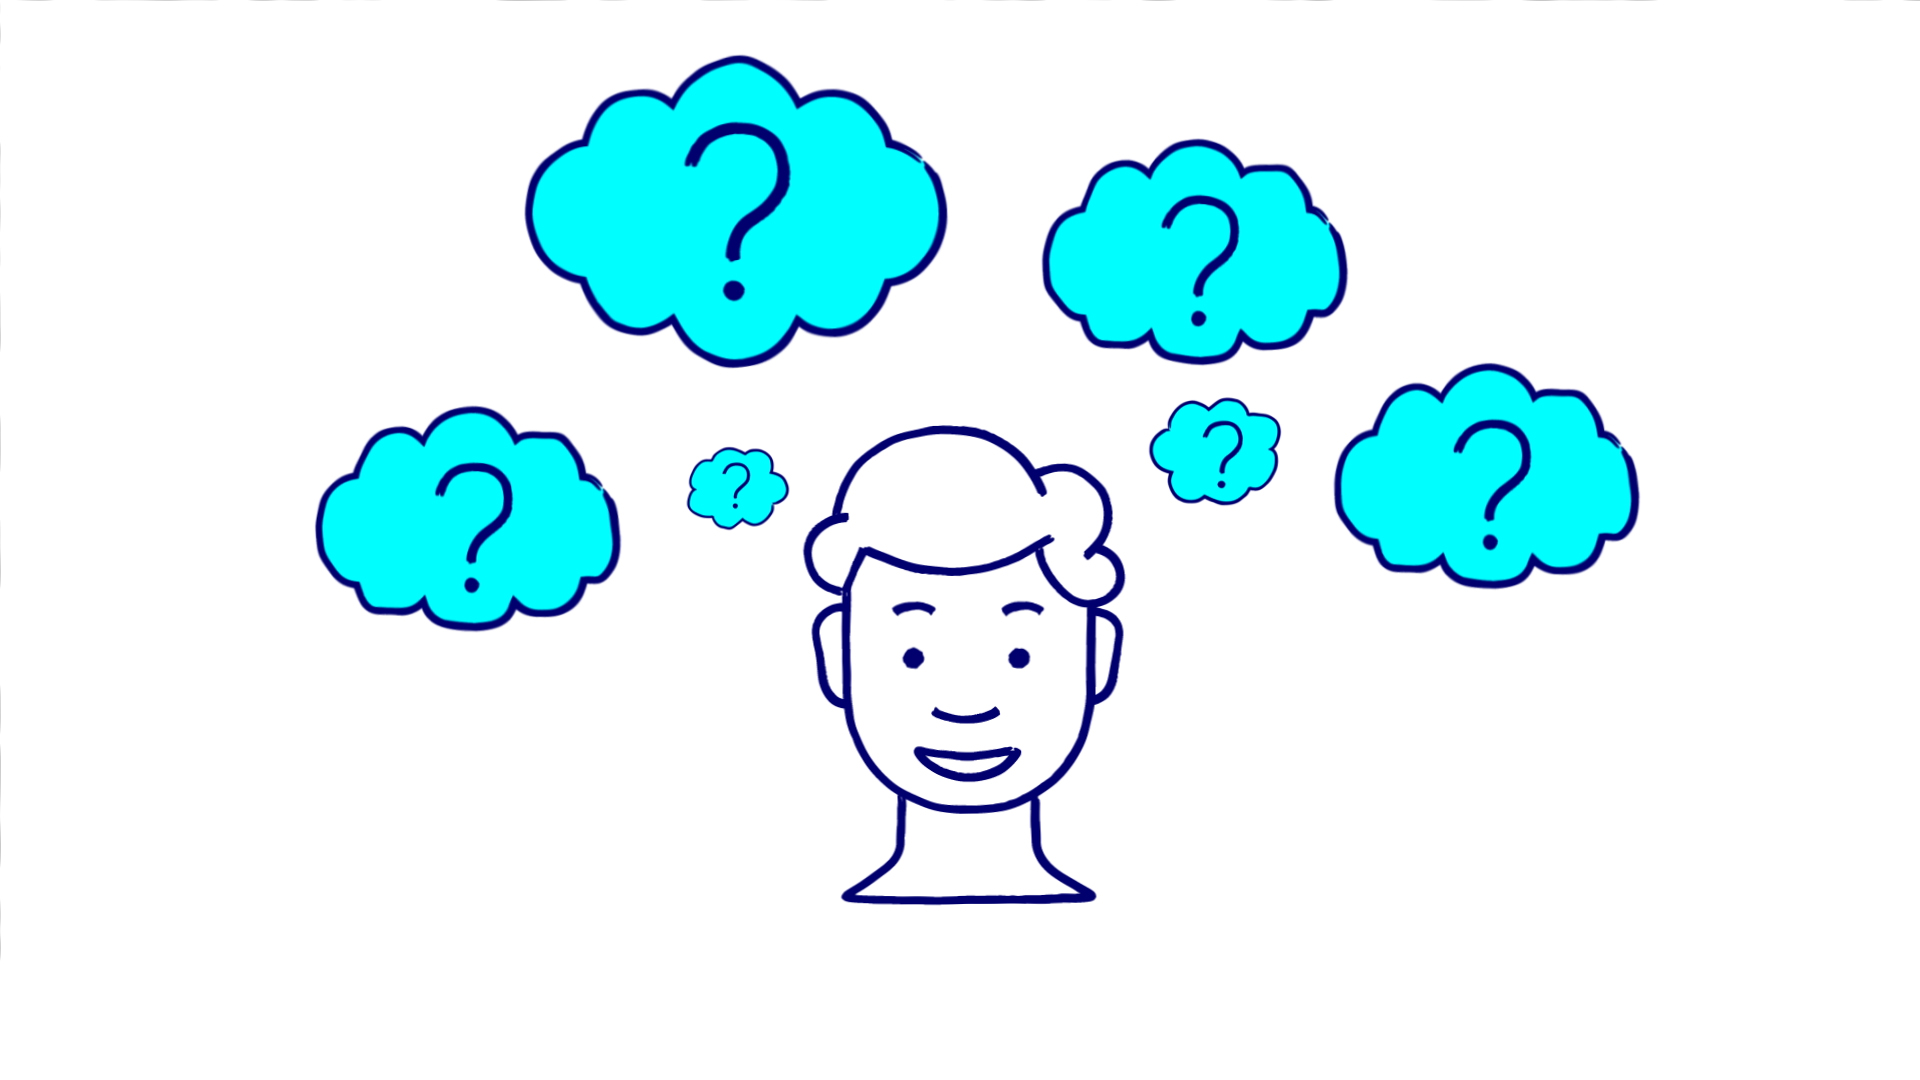 Cartoon boy with 6 question mark clouds above head